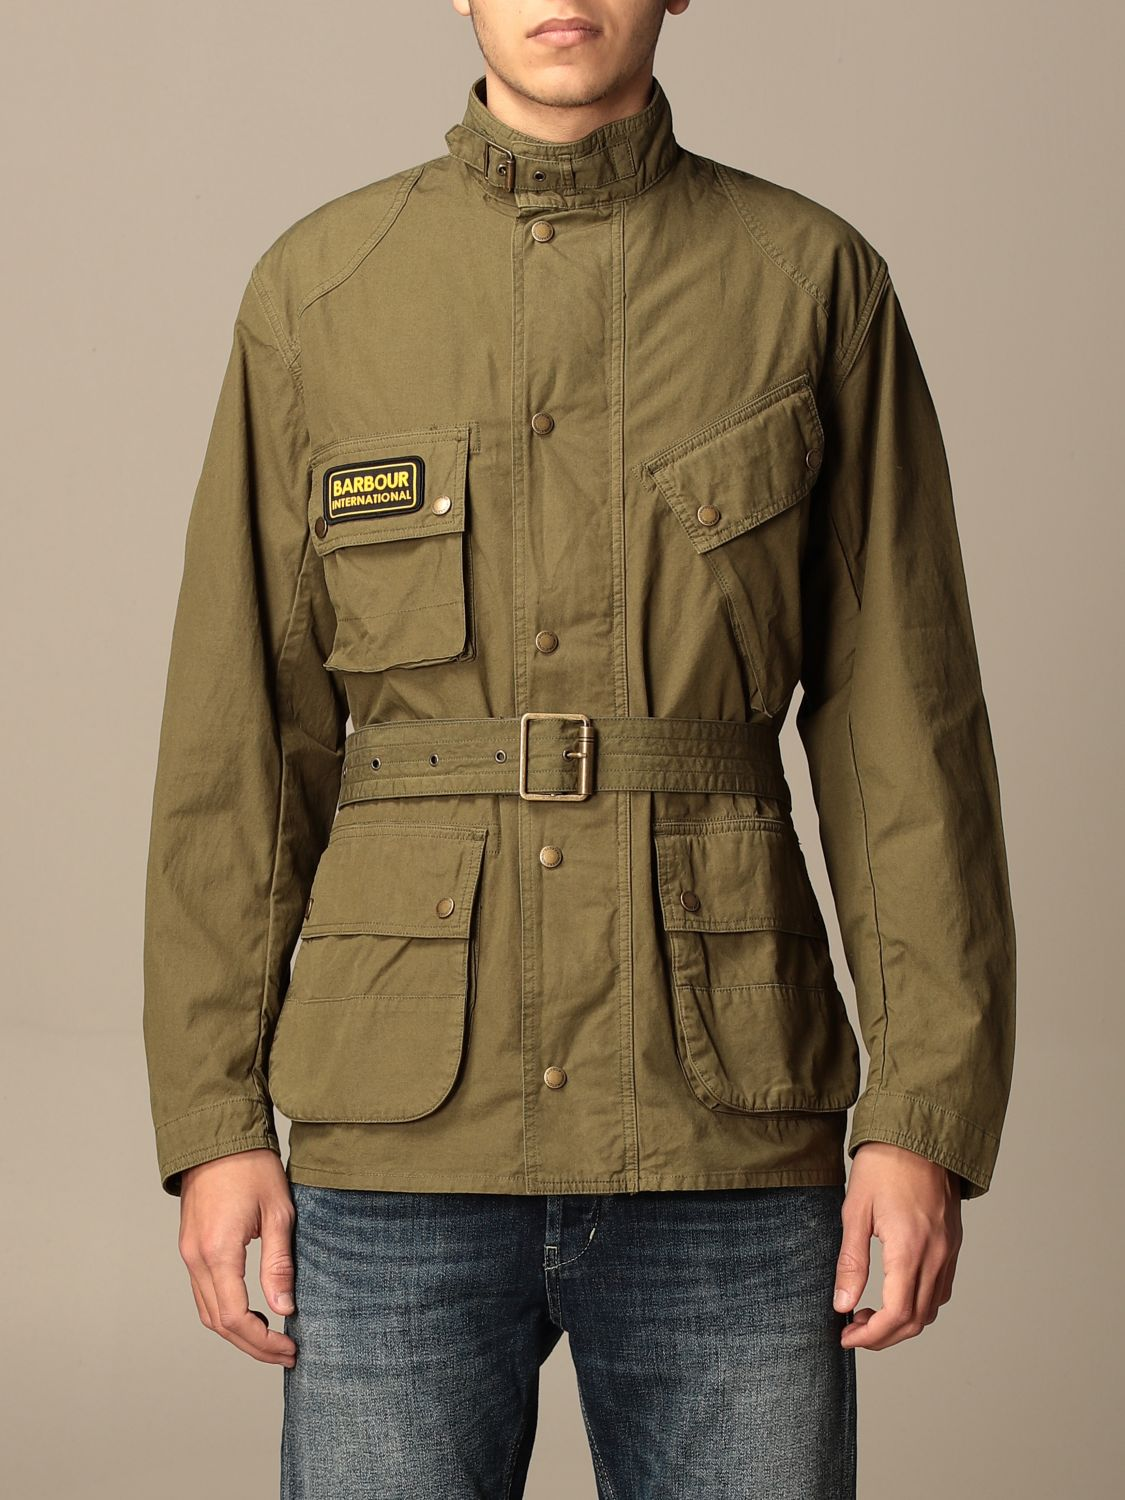 Giacca Barbour: Giacca Barbour in canvas militare 1